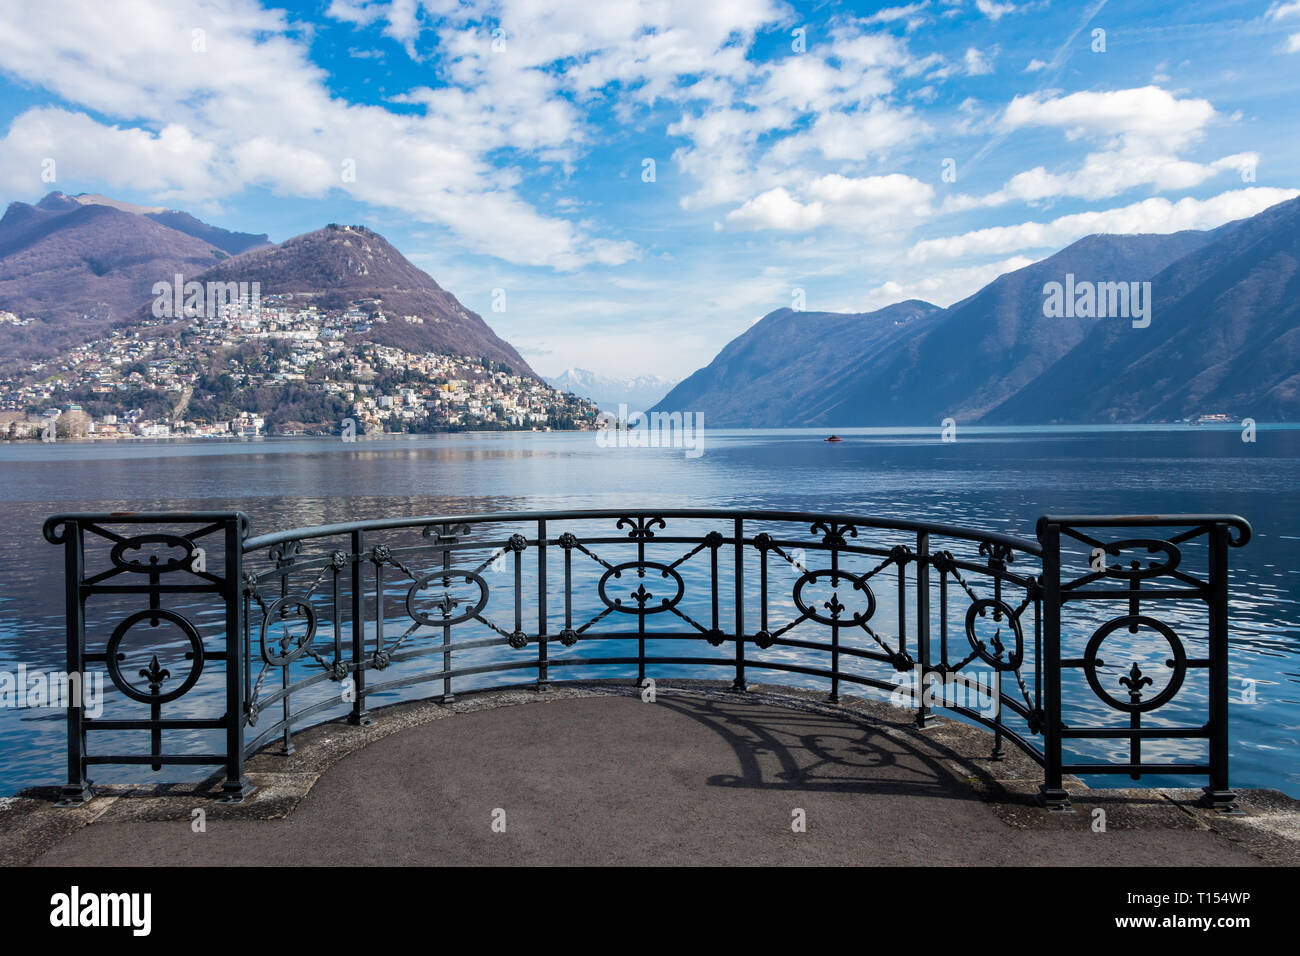 Black fence in perspective on the shores of Lake Lugano, Ticino canton of Switzerland Stock Photo